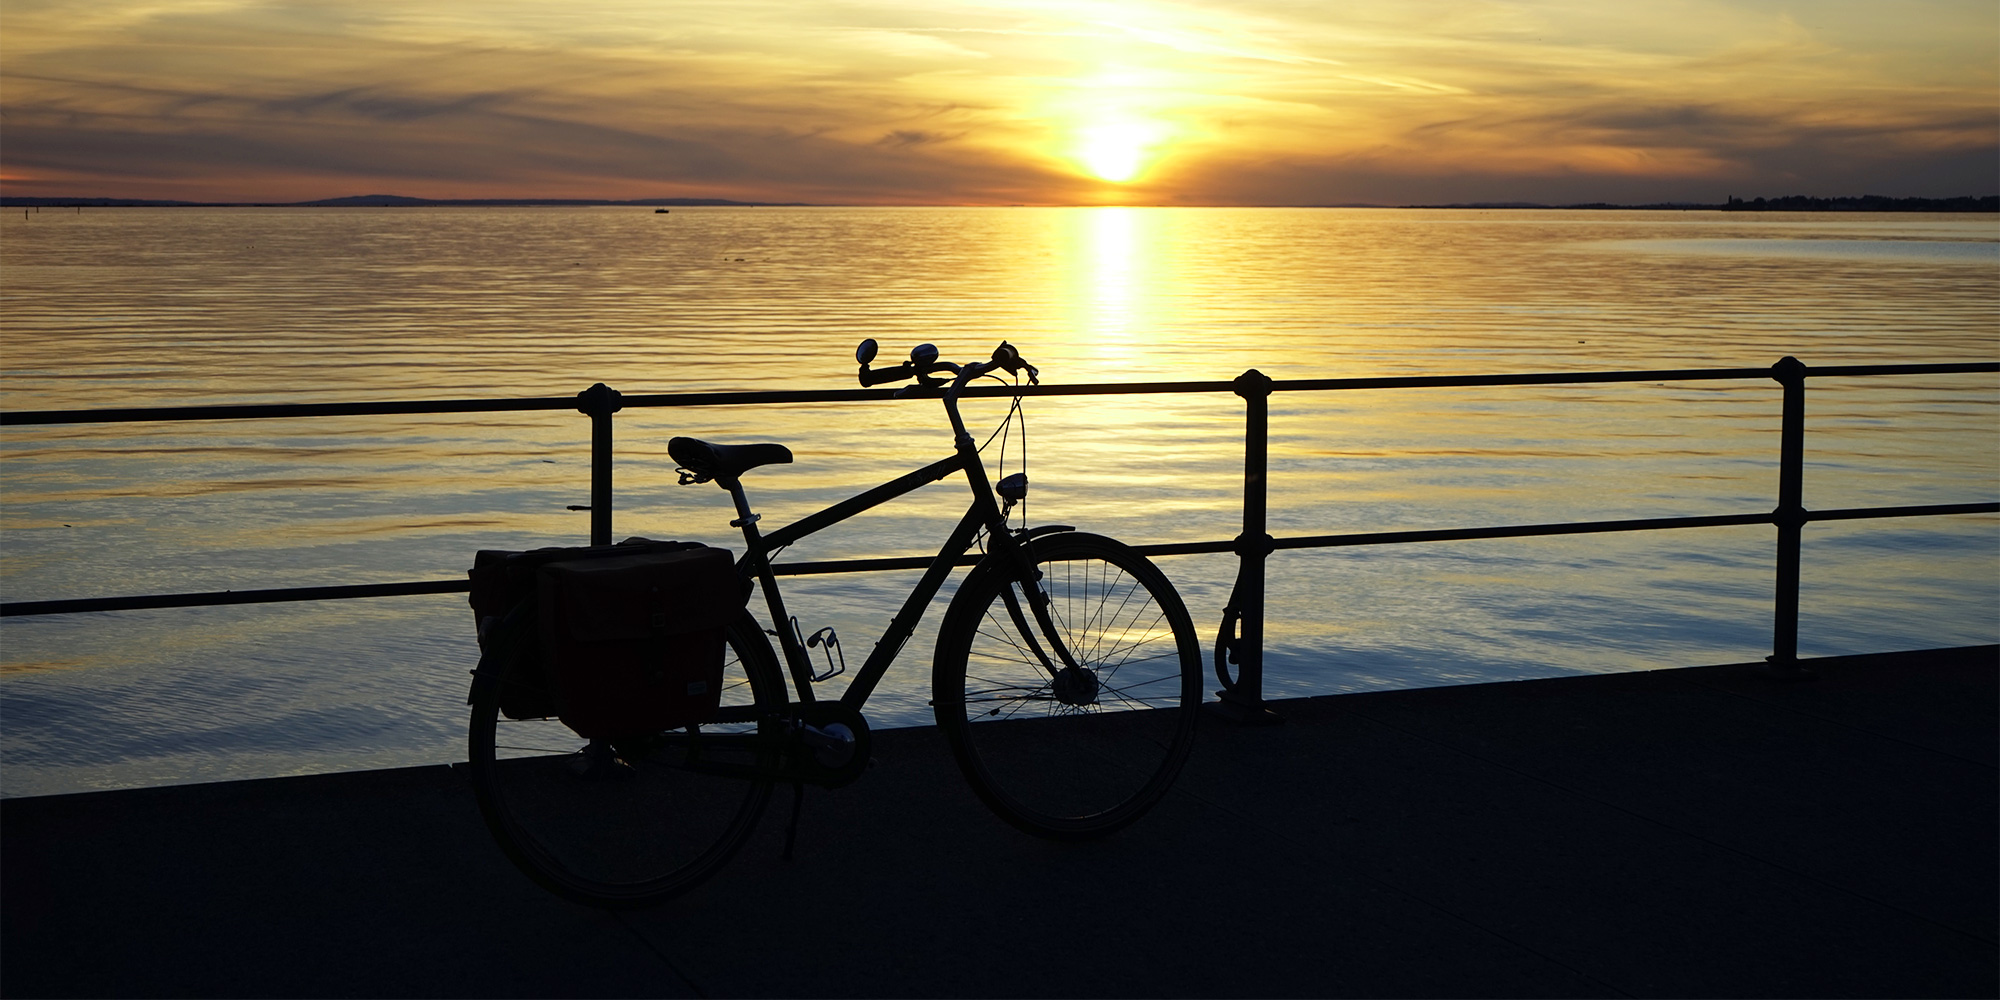 Silhouette of a bike on the beach at dusk.